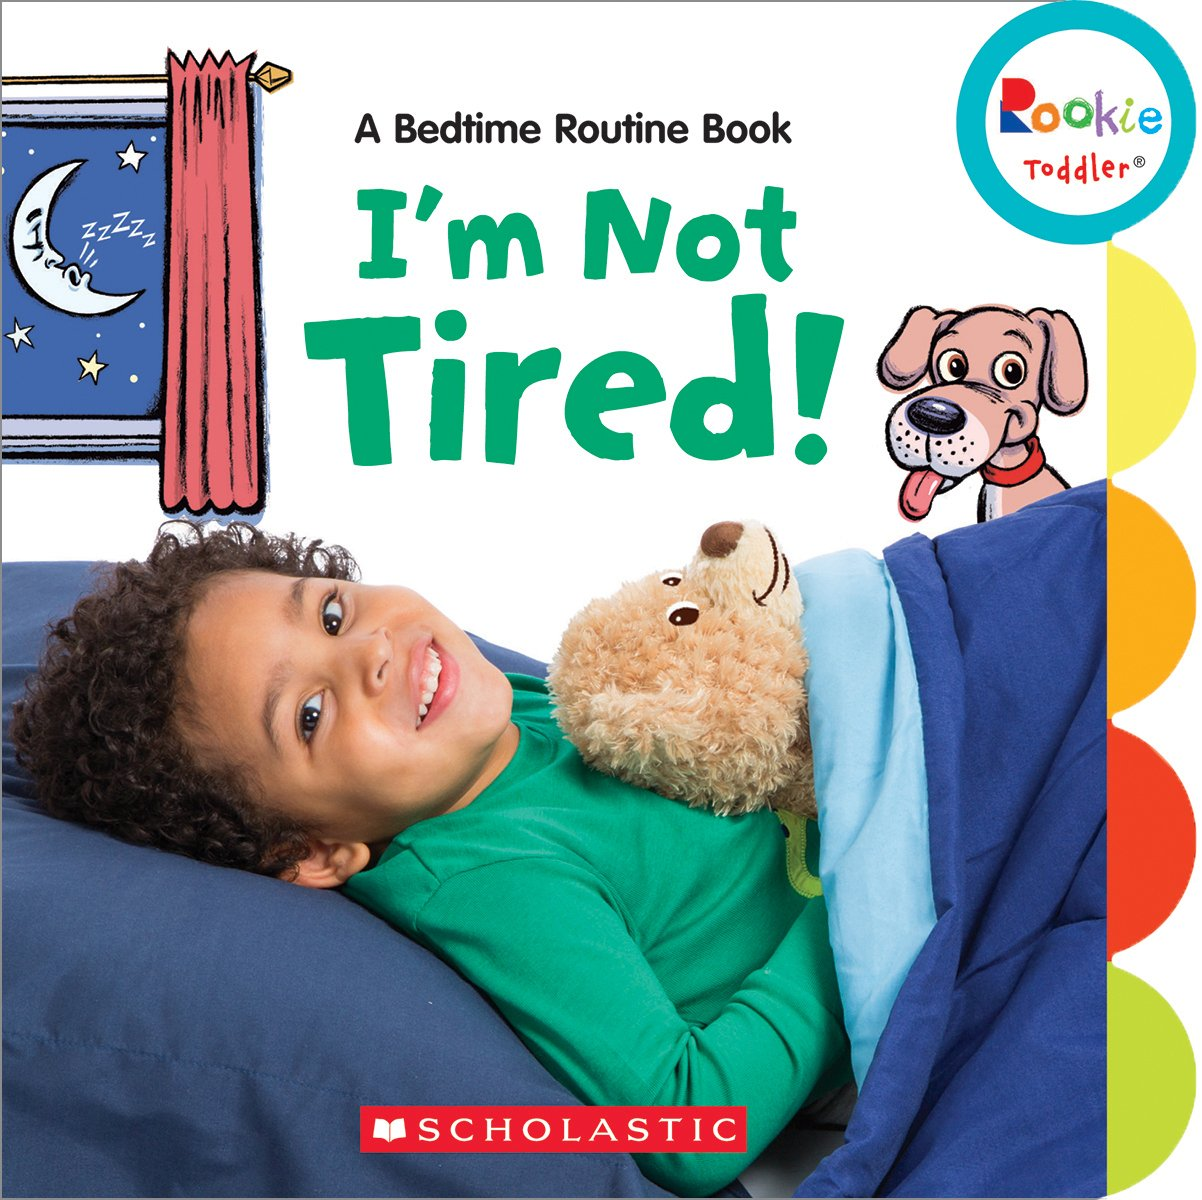 I'm Not Tired!: A Bedtime Routine Book (Rookie Toddler)